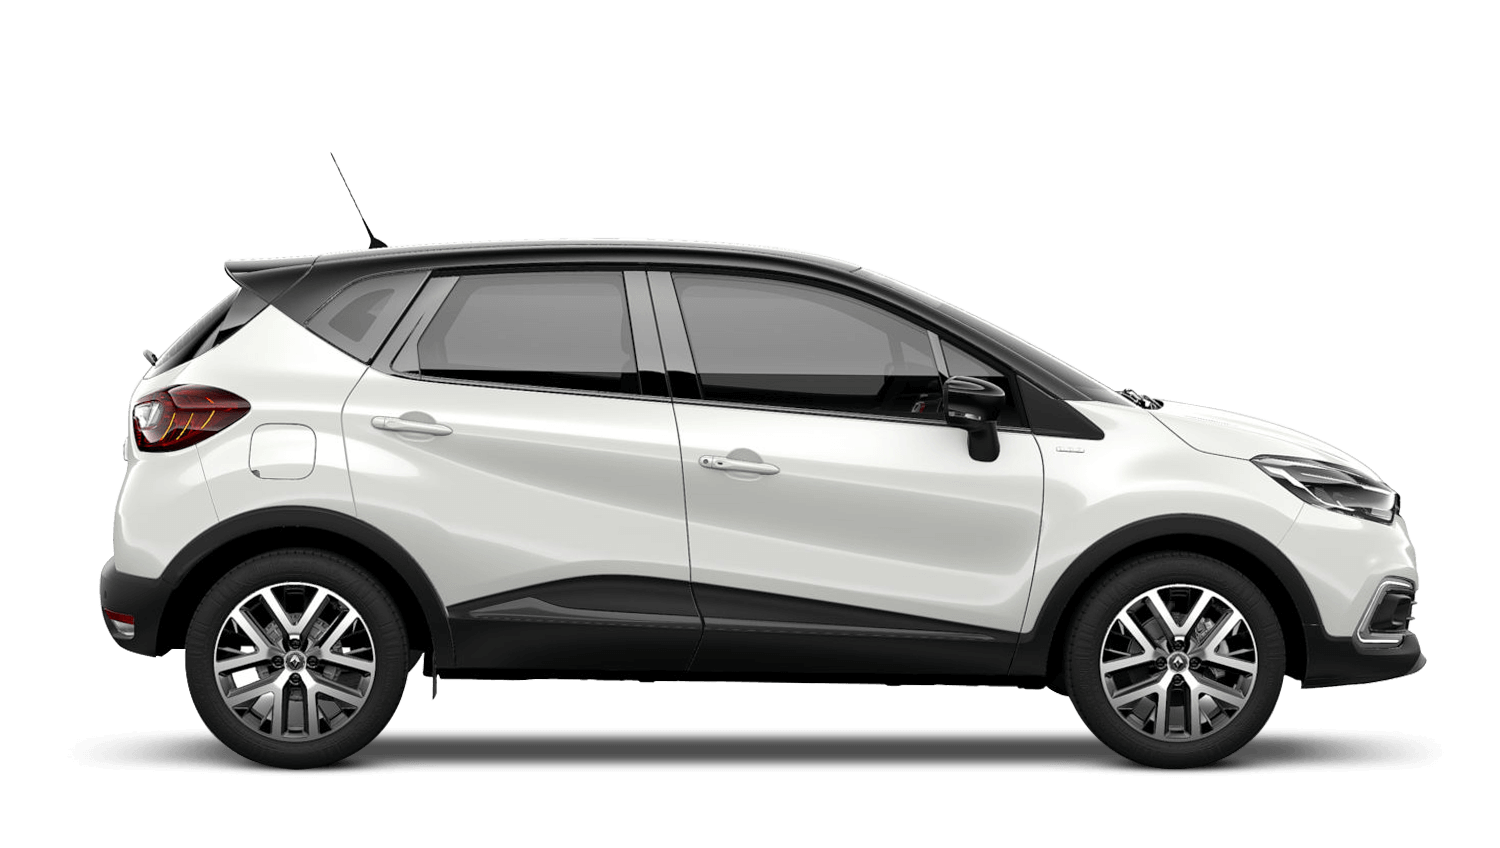 Renault Captur S Edition Finance Available